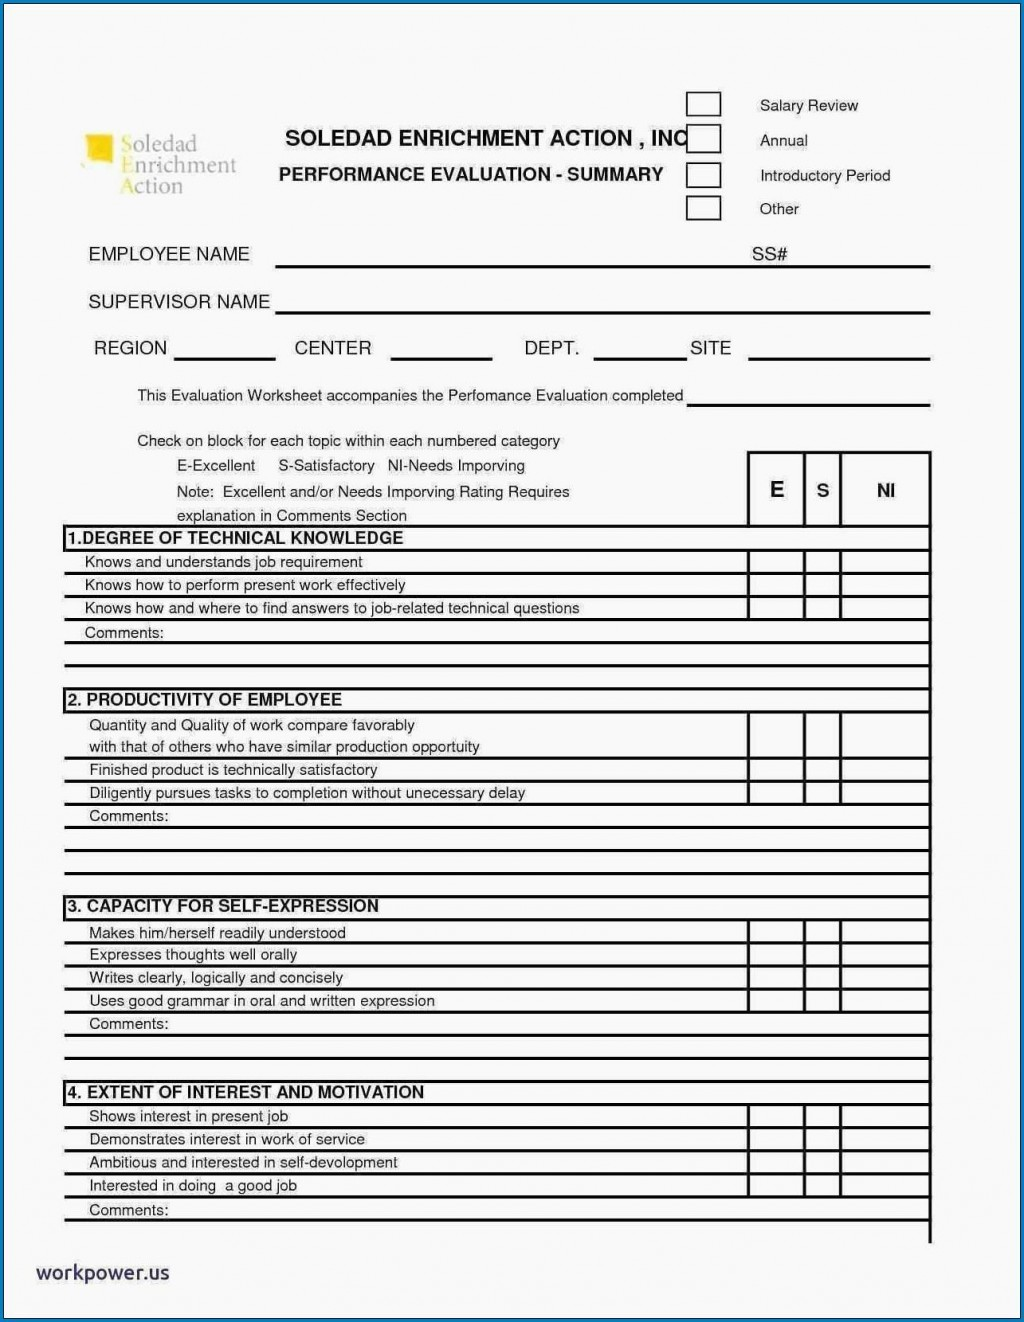 008 Remarkable Employee Performance Review Template Word Image  Microsoft DocumentLarge